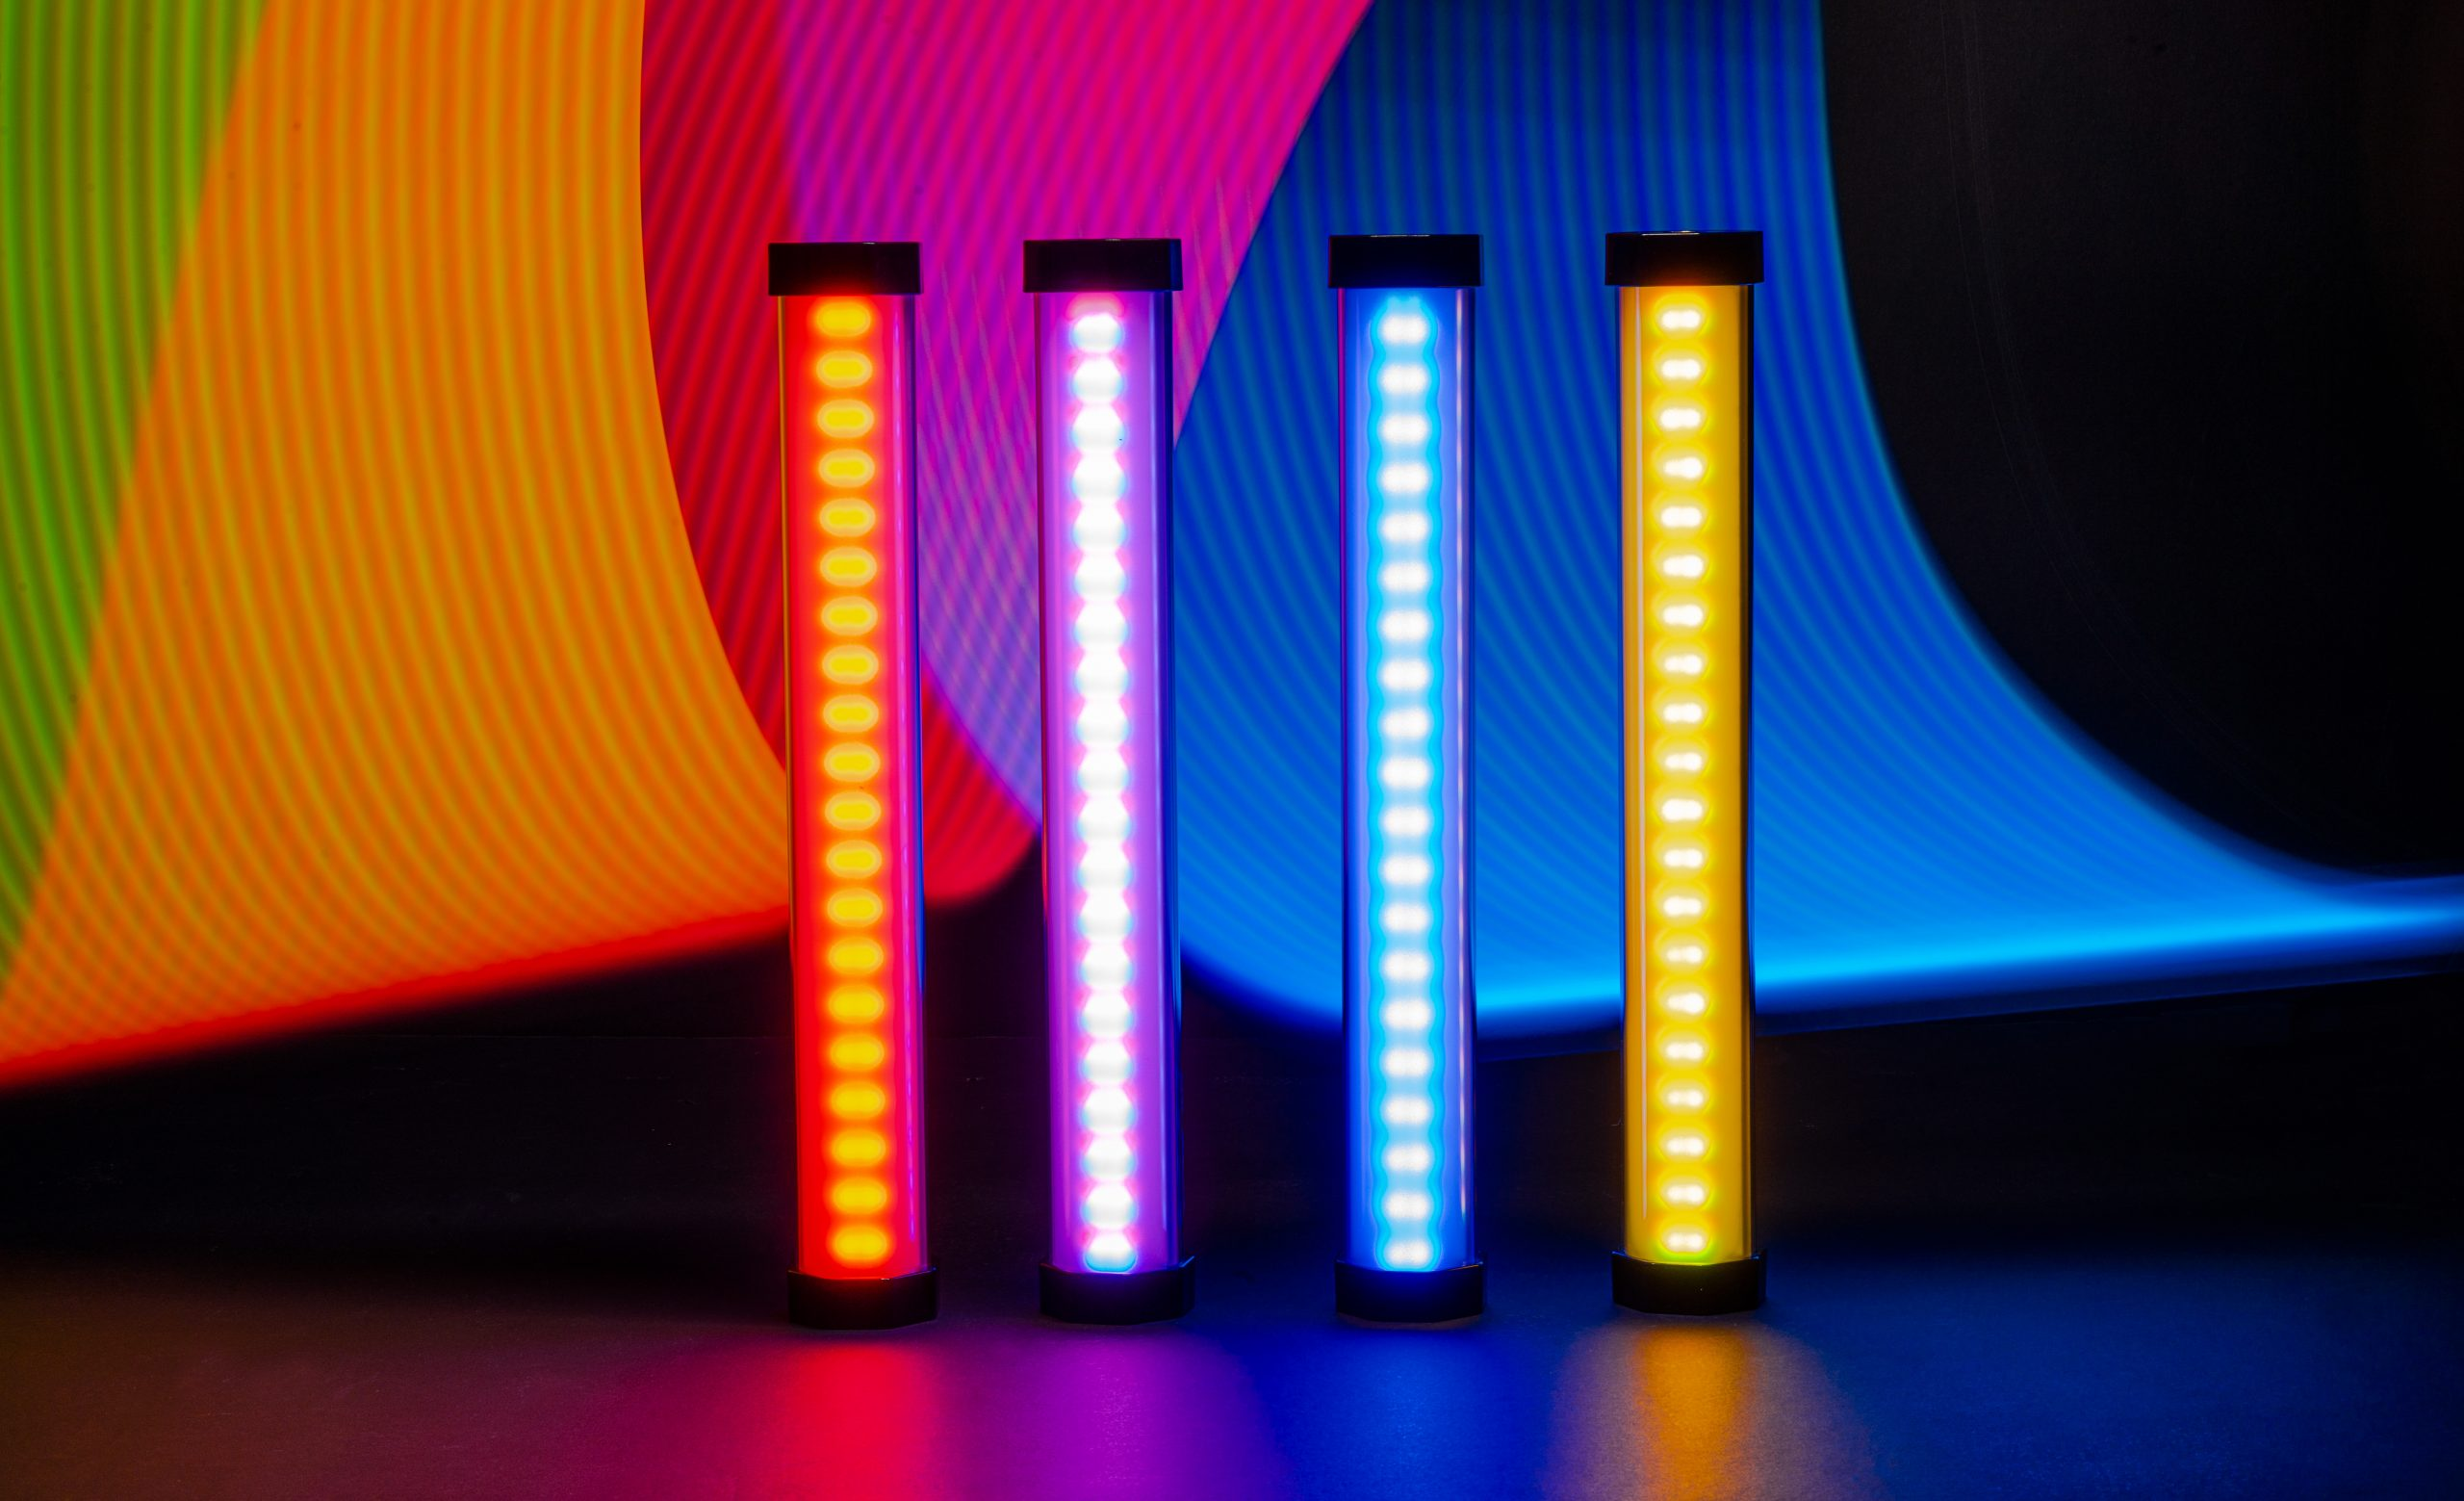 Creative light painting with tube lights